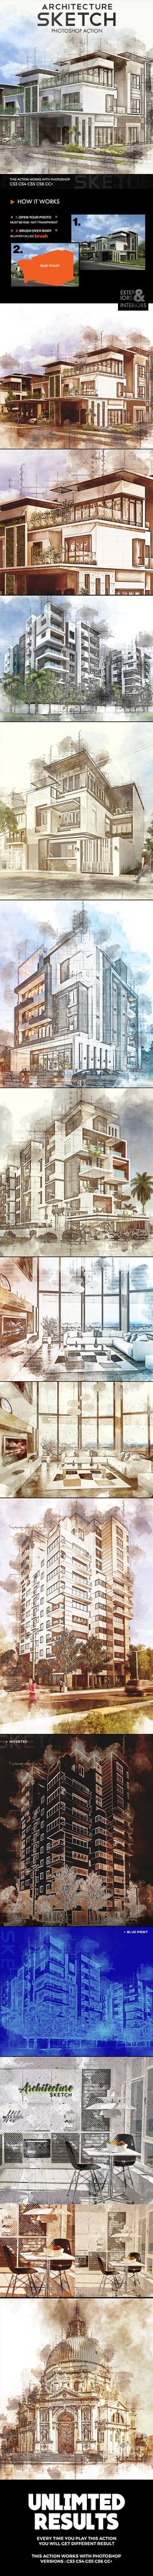 Architecture Sketch Photoshop Action — Photoshop ATN #artistic #hand drawn • Available here ➝ https://graphicriver.net/item/architecture-sketch-photoshop-action/20891106?ref=pxcr